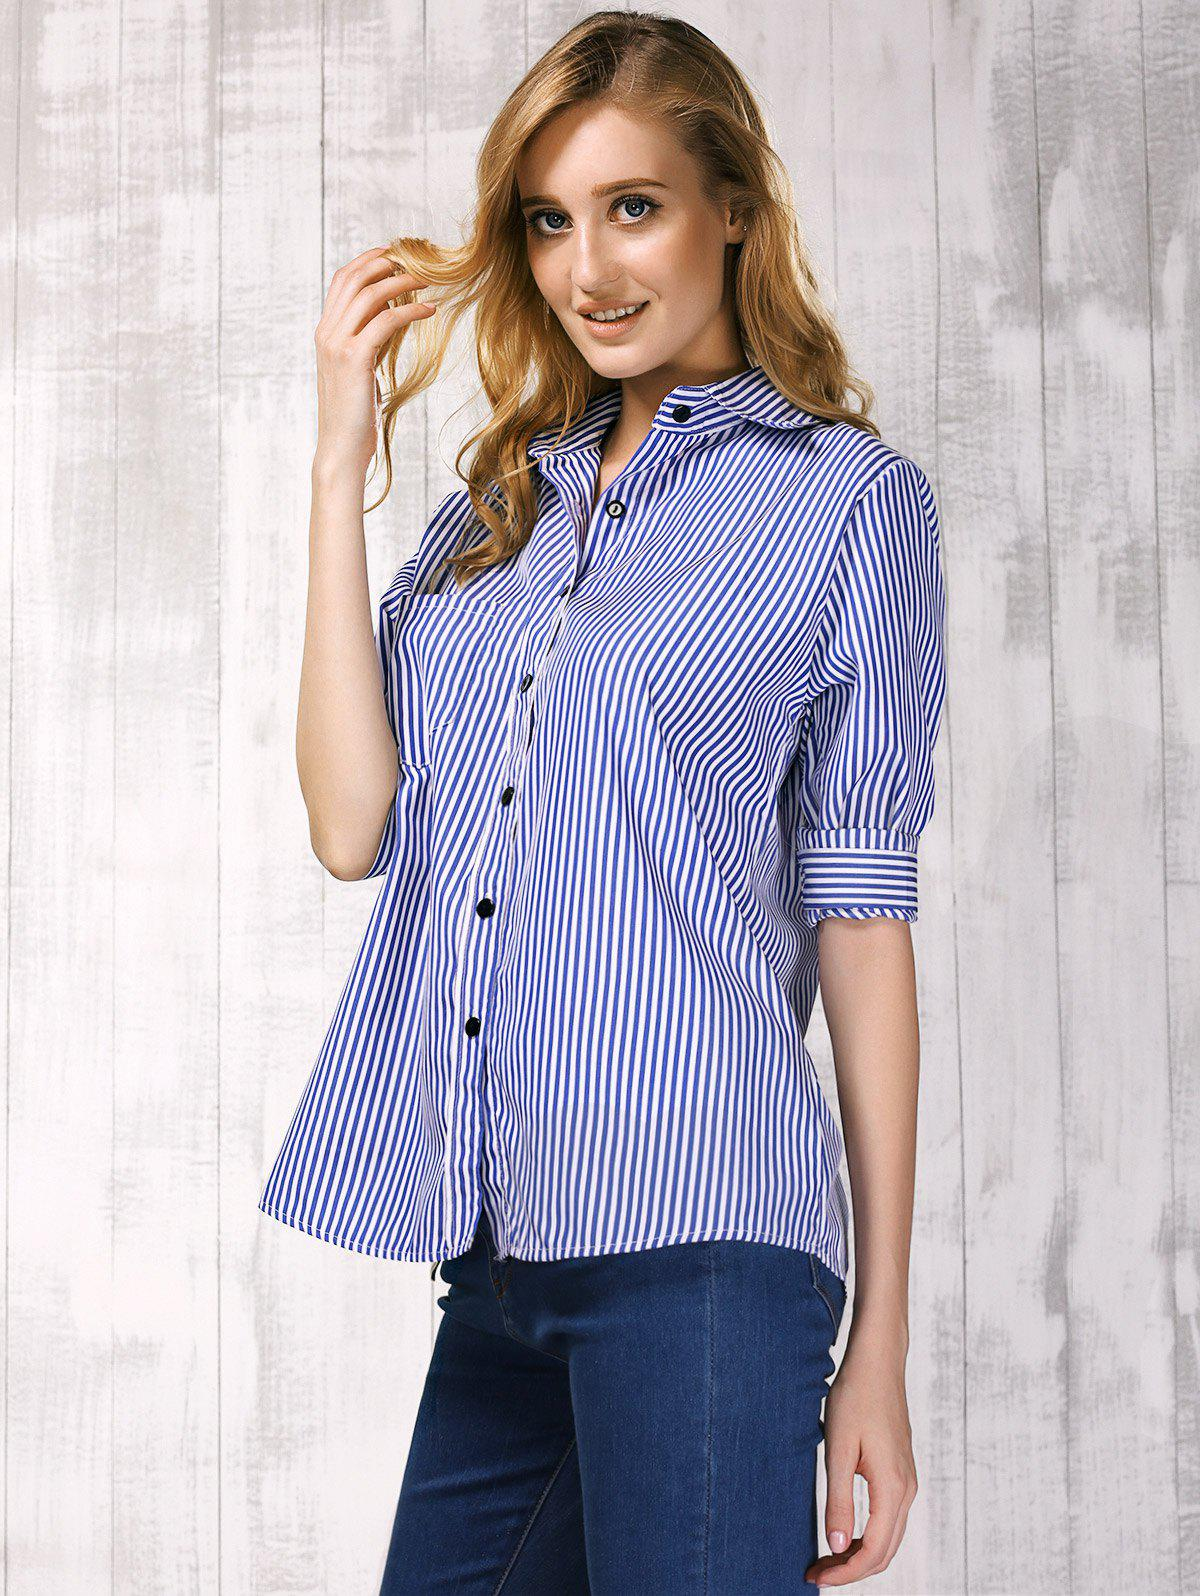 Brief Shirt Collar Long Sleeve Vertical Striped Shirt For Women - BLUE XL